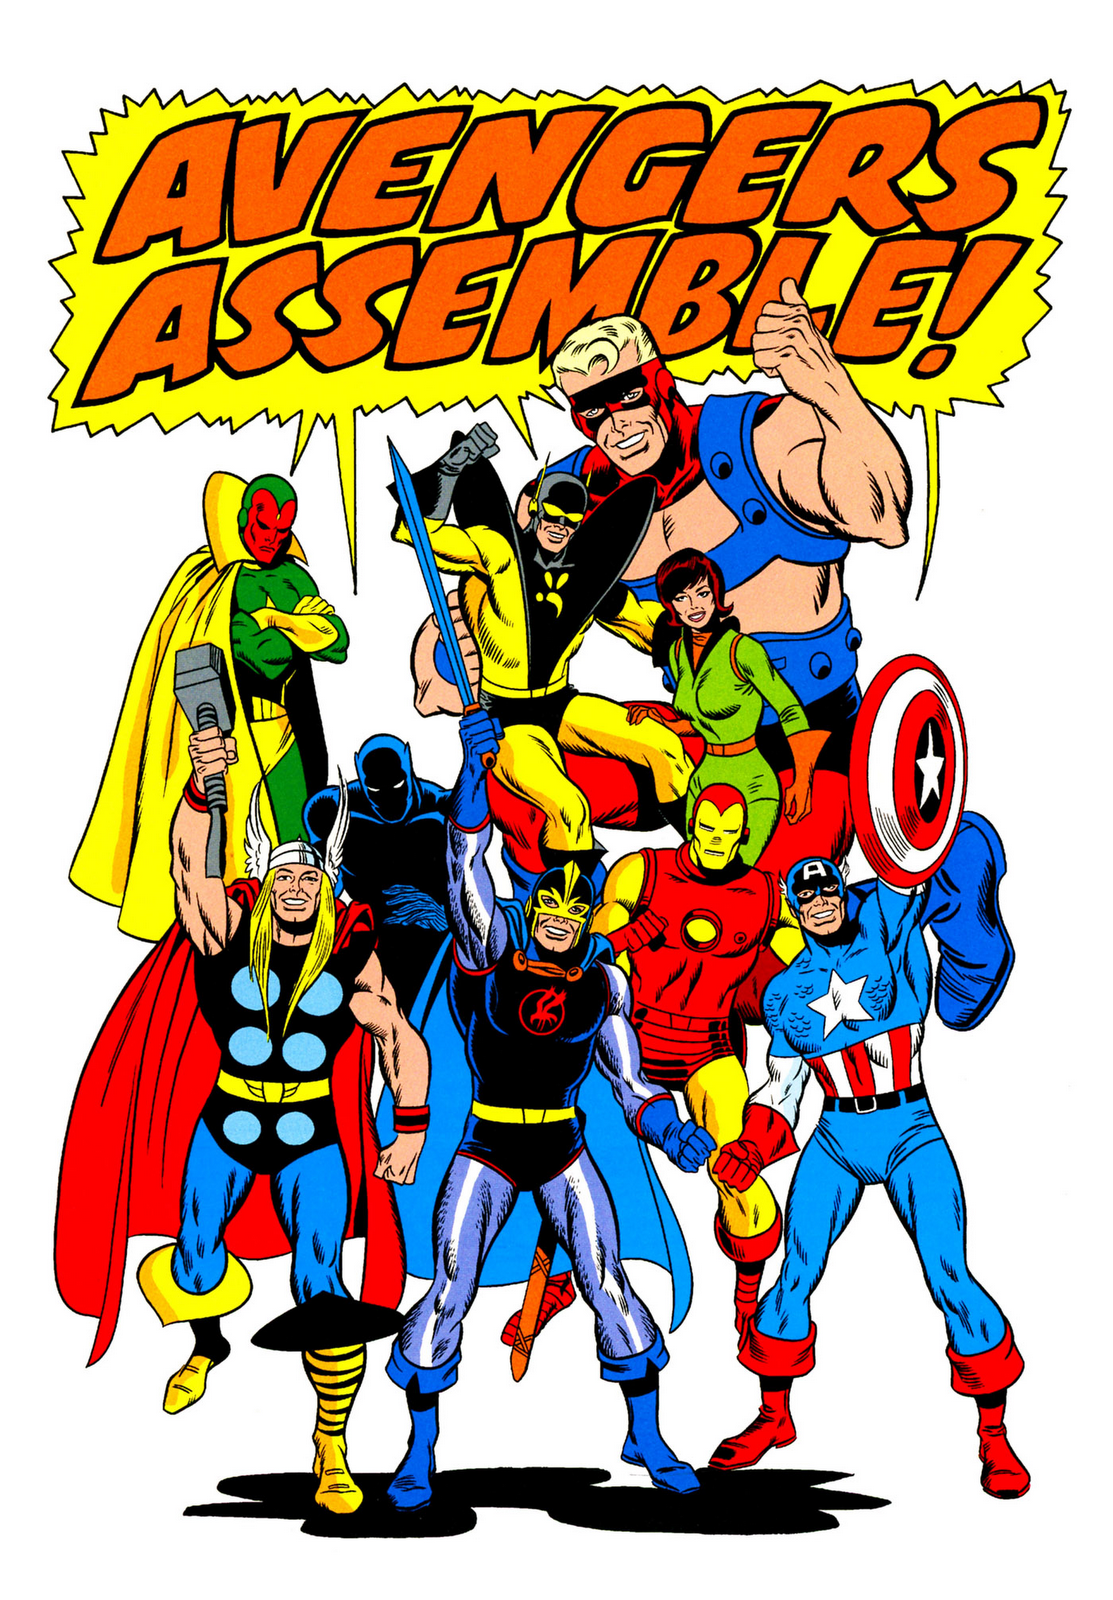 Avengers clipart avengers assemble. Williambrucewest commonday musings and